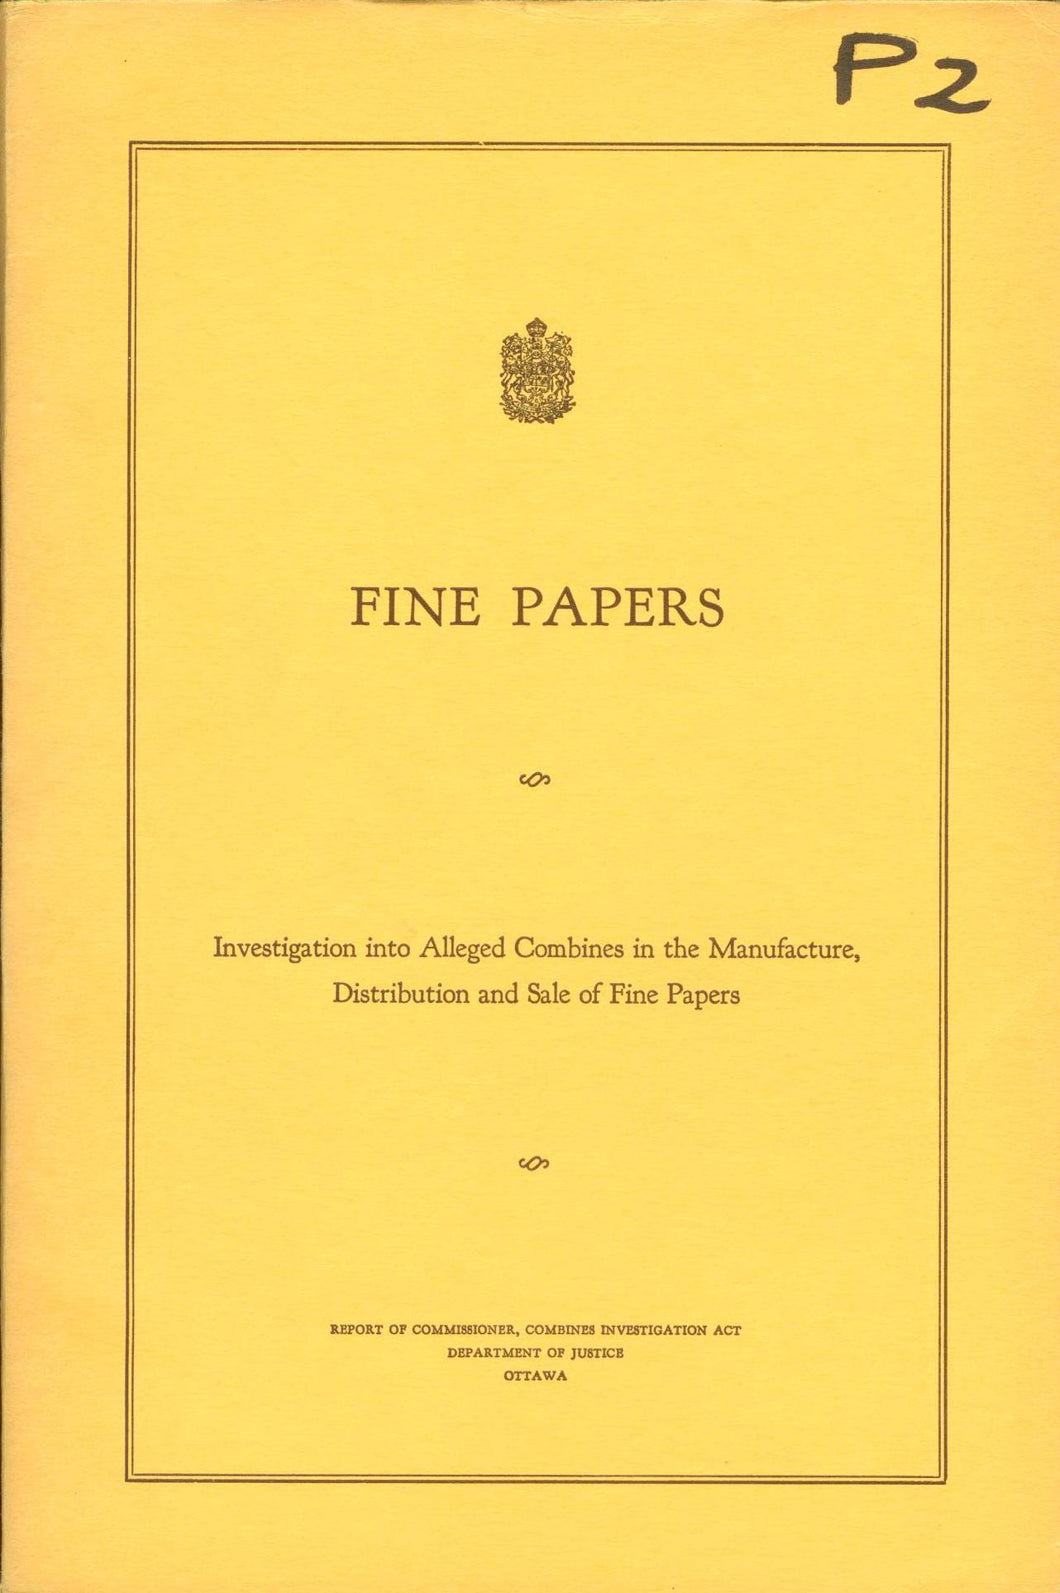 Fine Papers: Investigation into Alleged Combines in the Manufacture, Distribution and Sale of Fine Papers